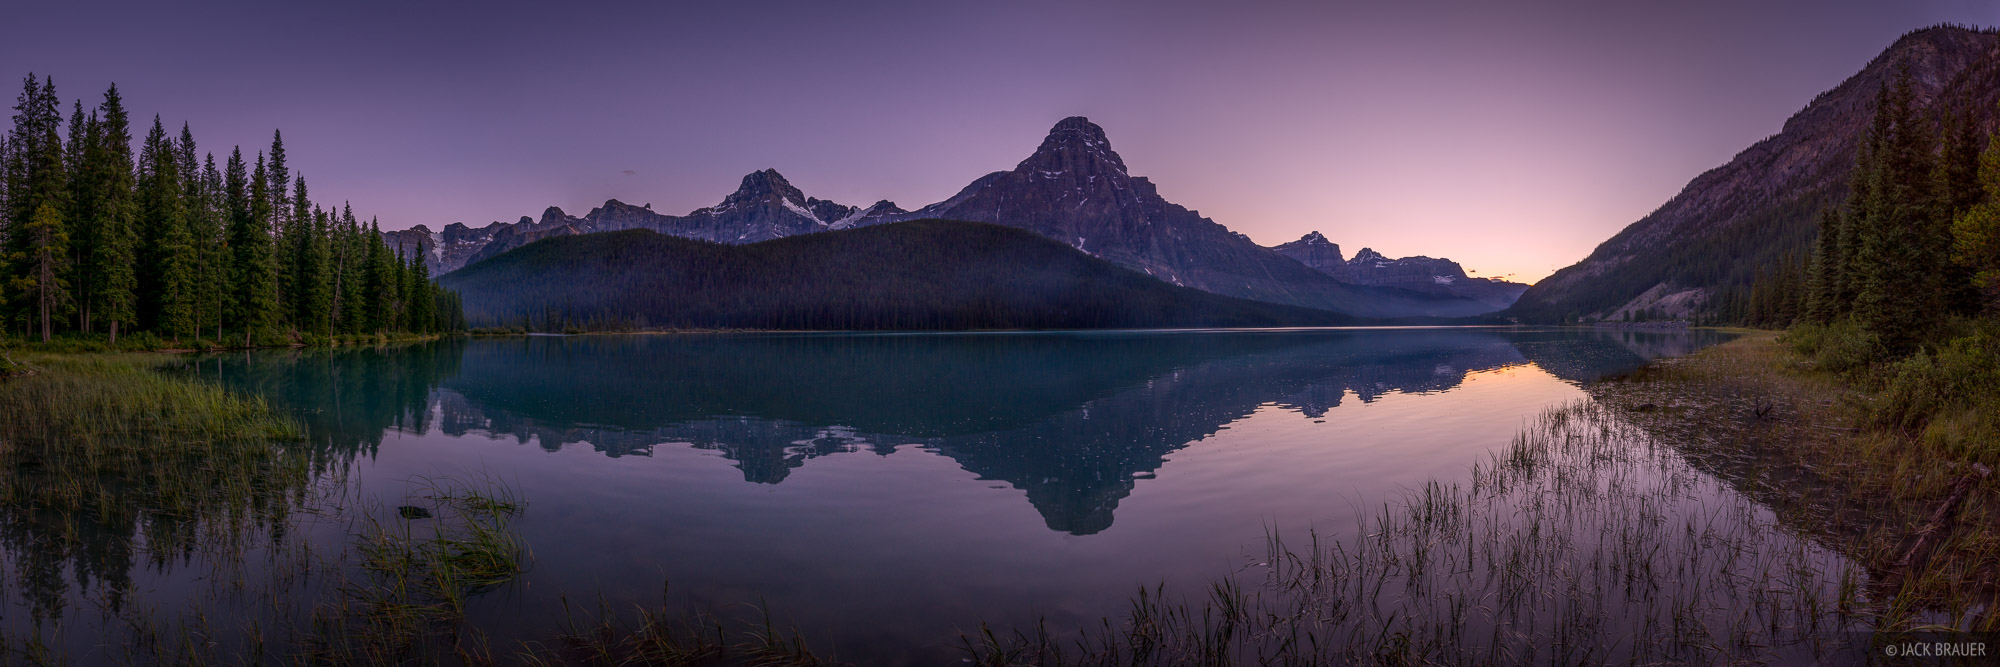 Alberta, Banff National Park, Canada, Canadian Rockies, Mount Chephren, Waterfowl Lakes, panorama